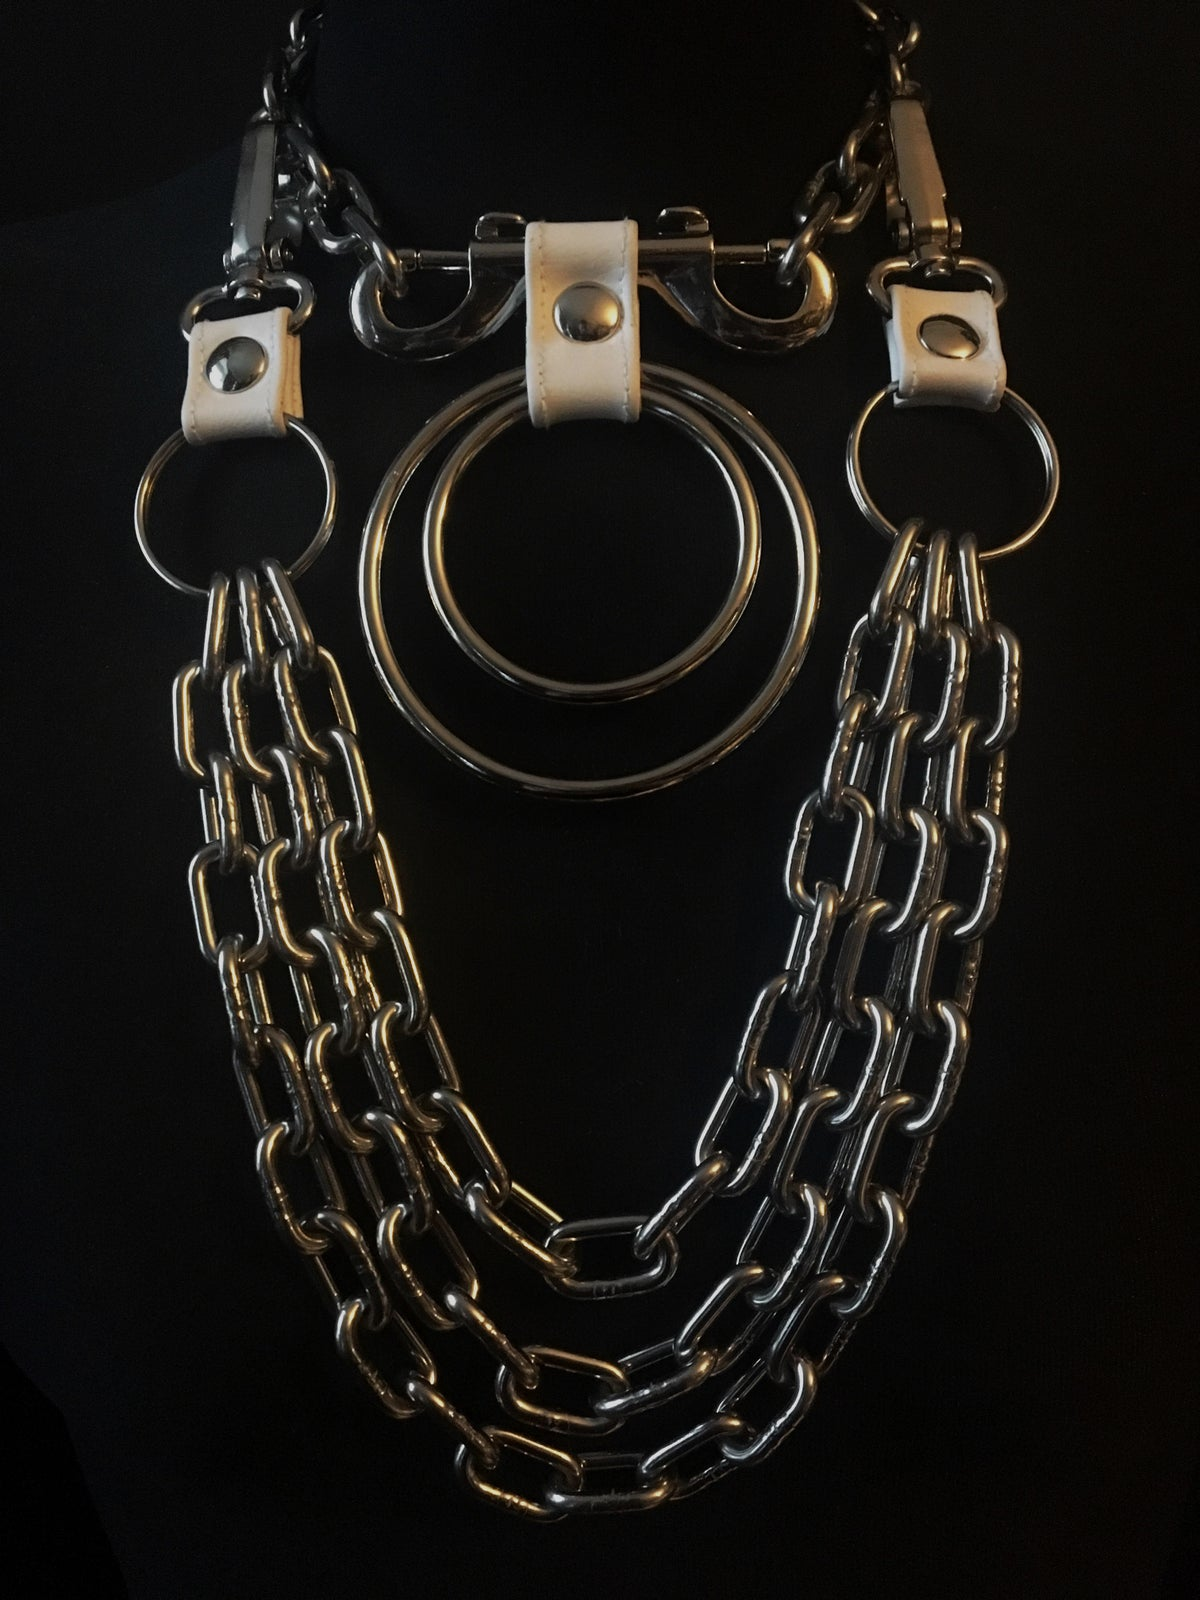 Double ring necklace white vegan leather